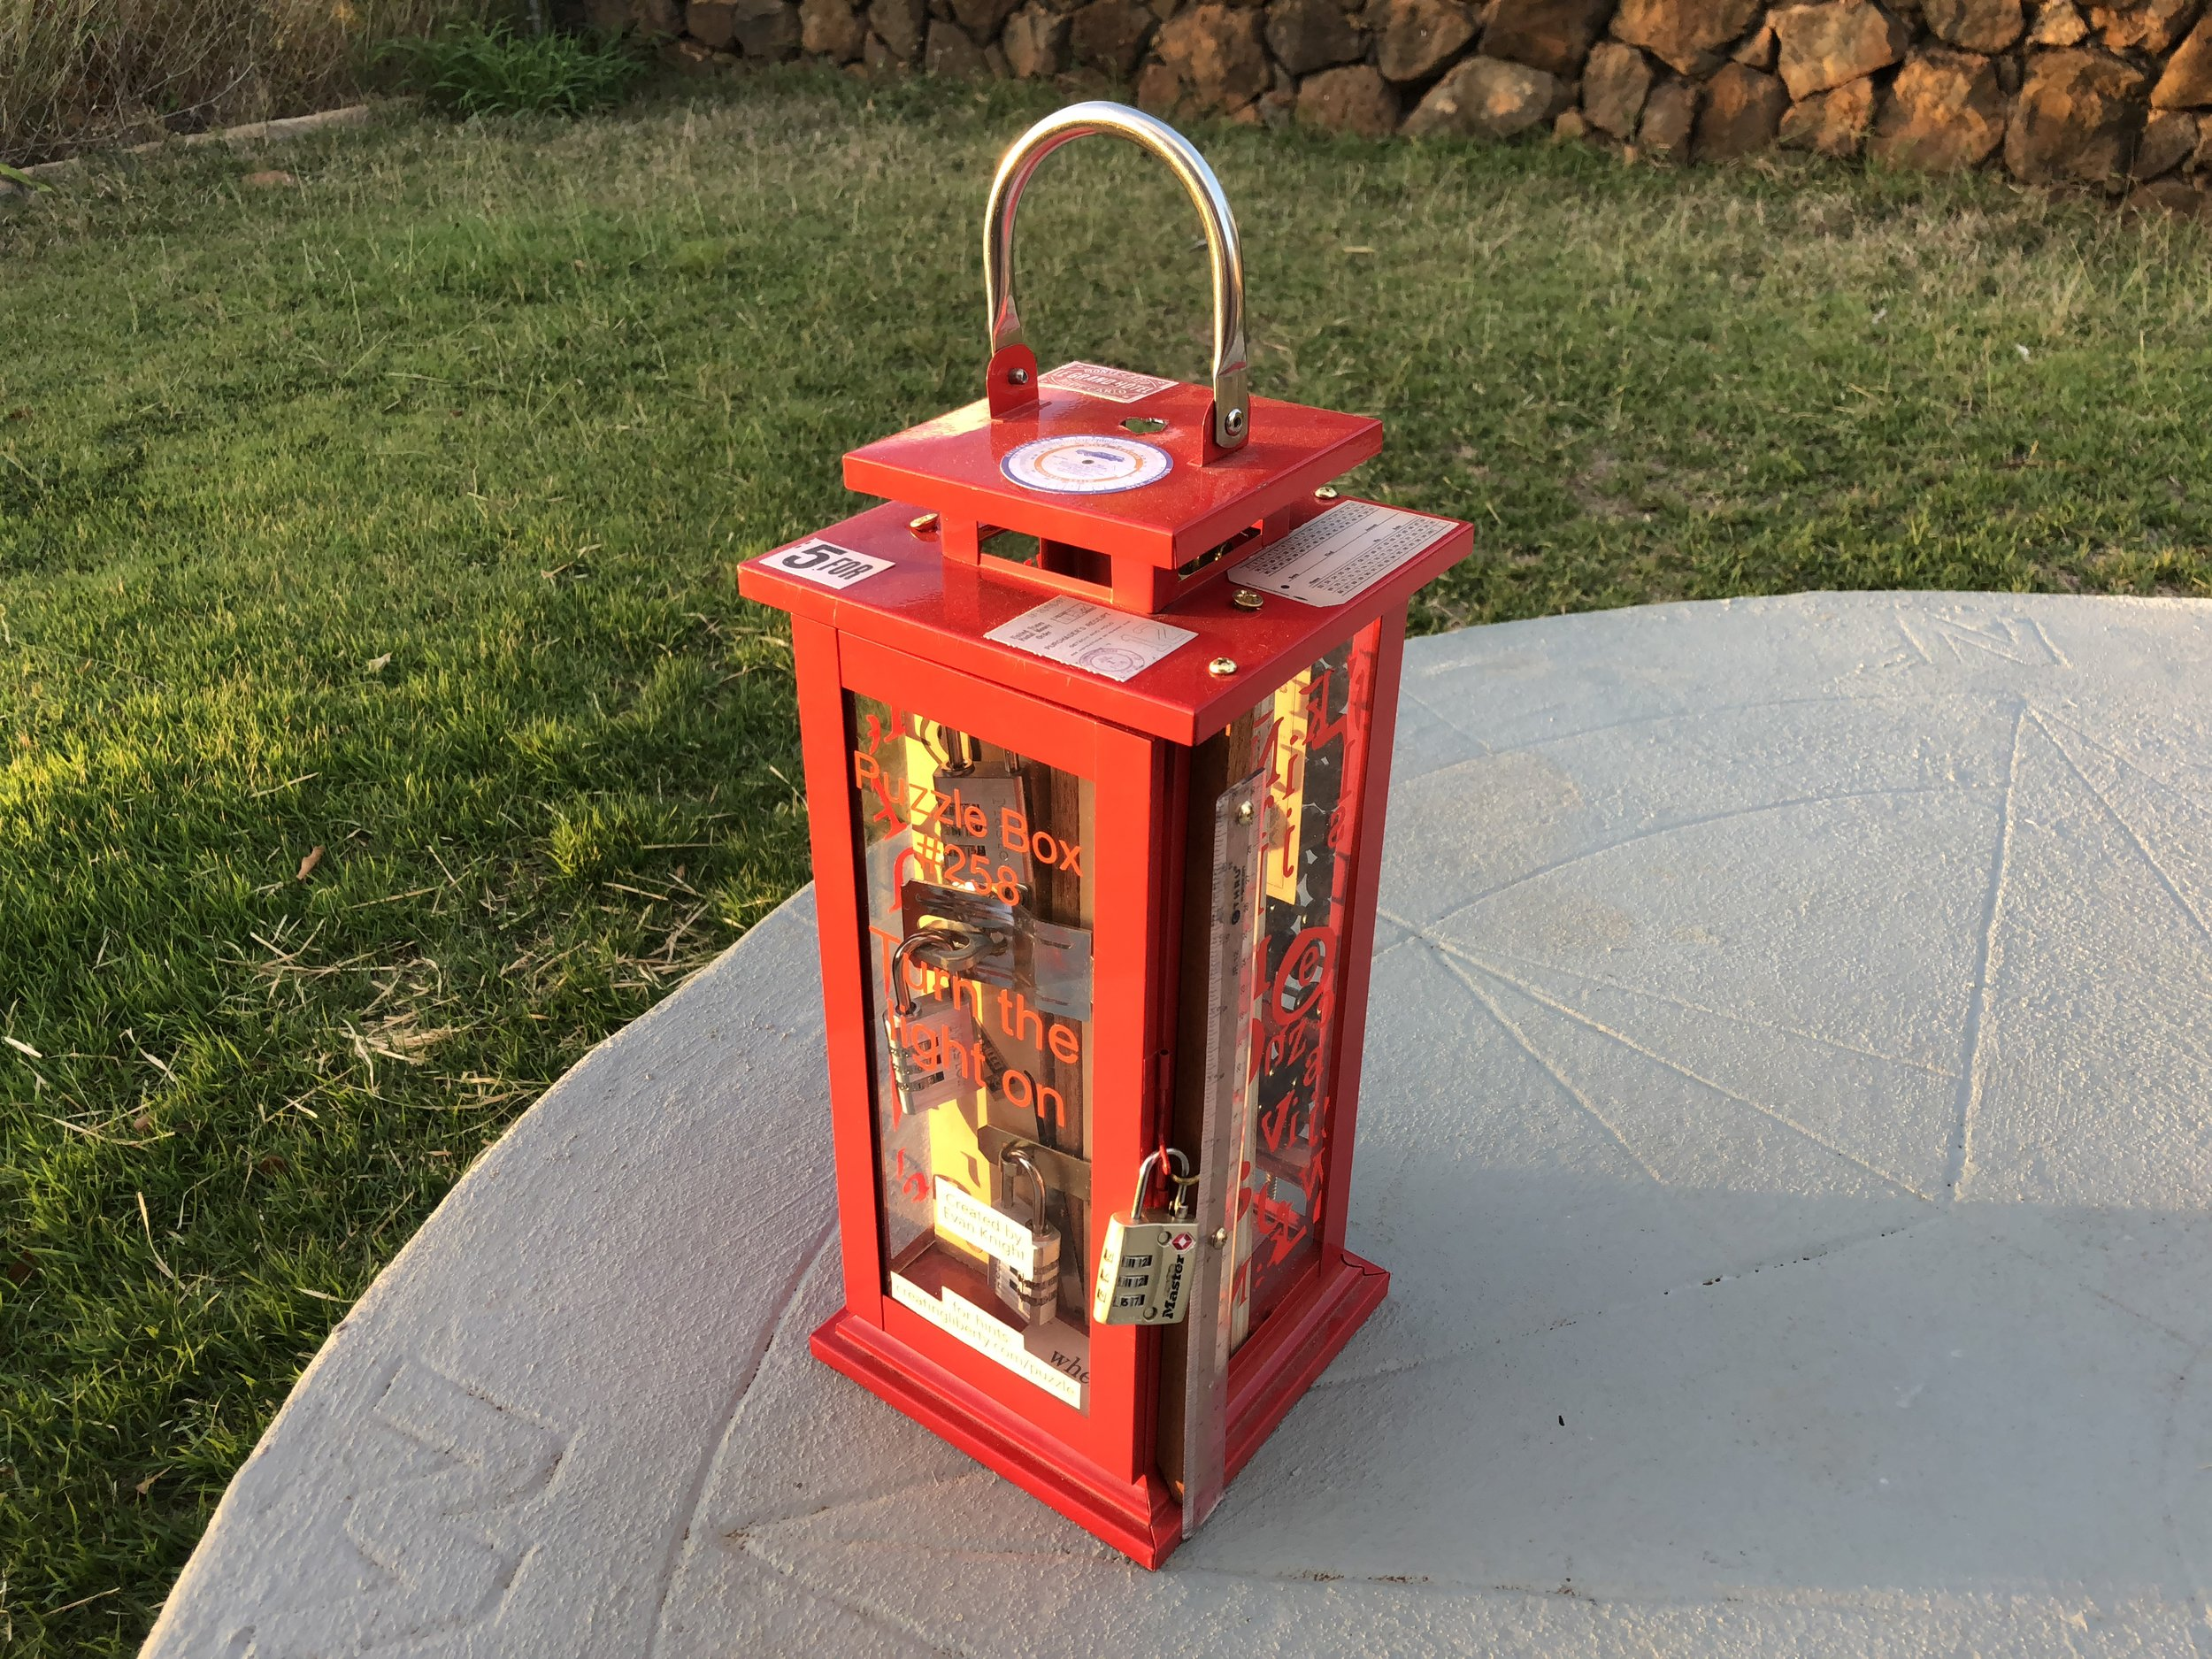 Lantern Escape Box - This Escape Box test your observation skills. The goal is simple turn on the light but are you smart enough to make the light shine.